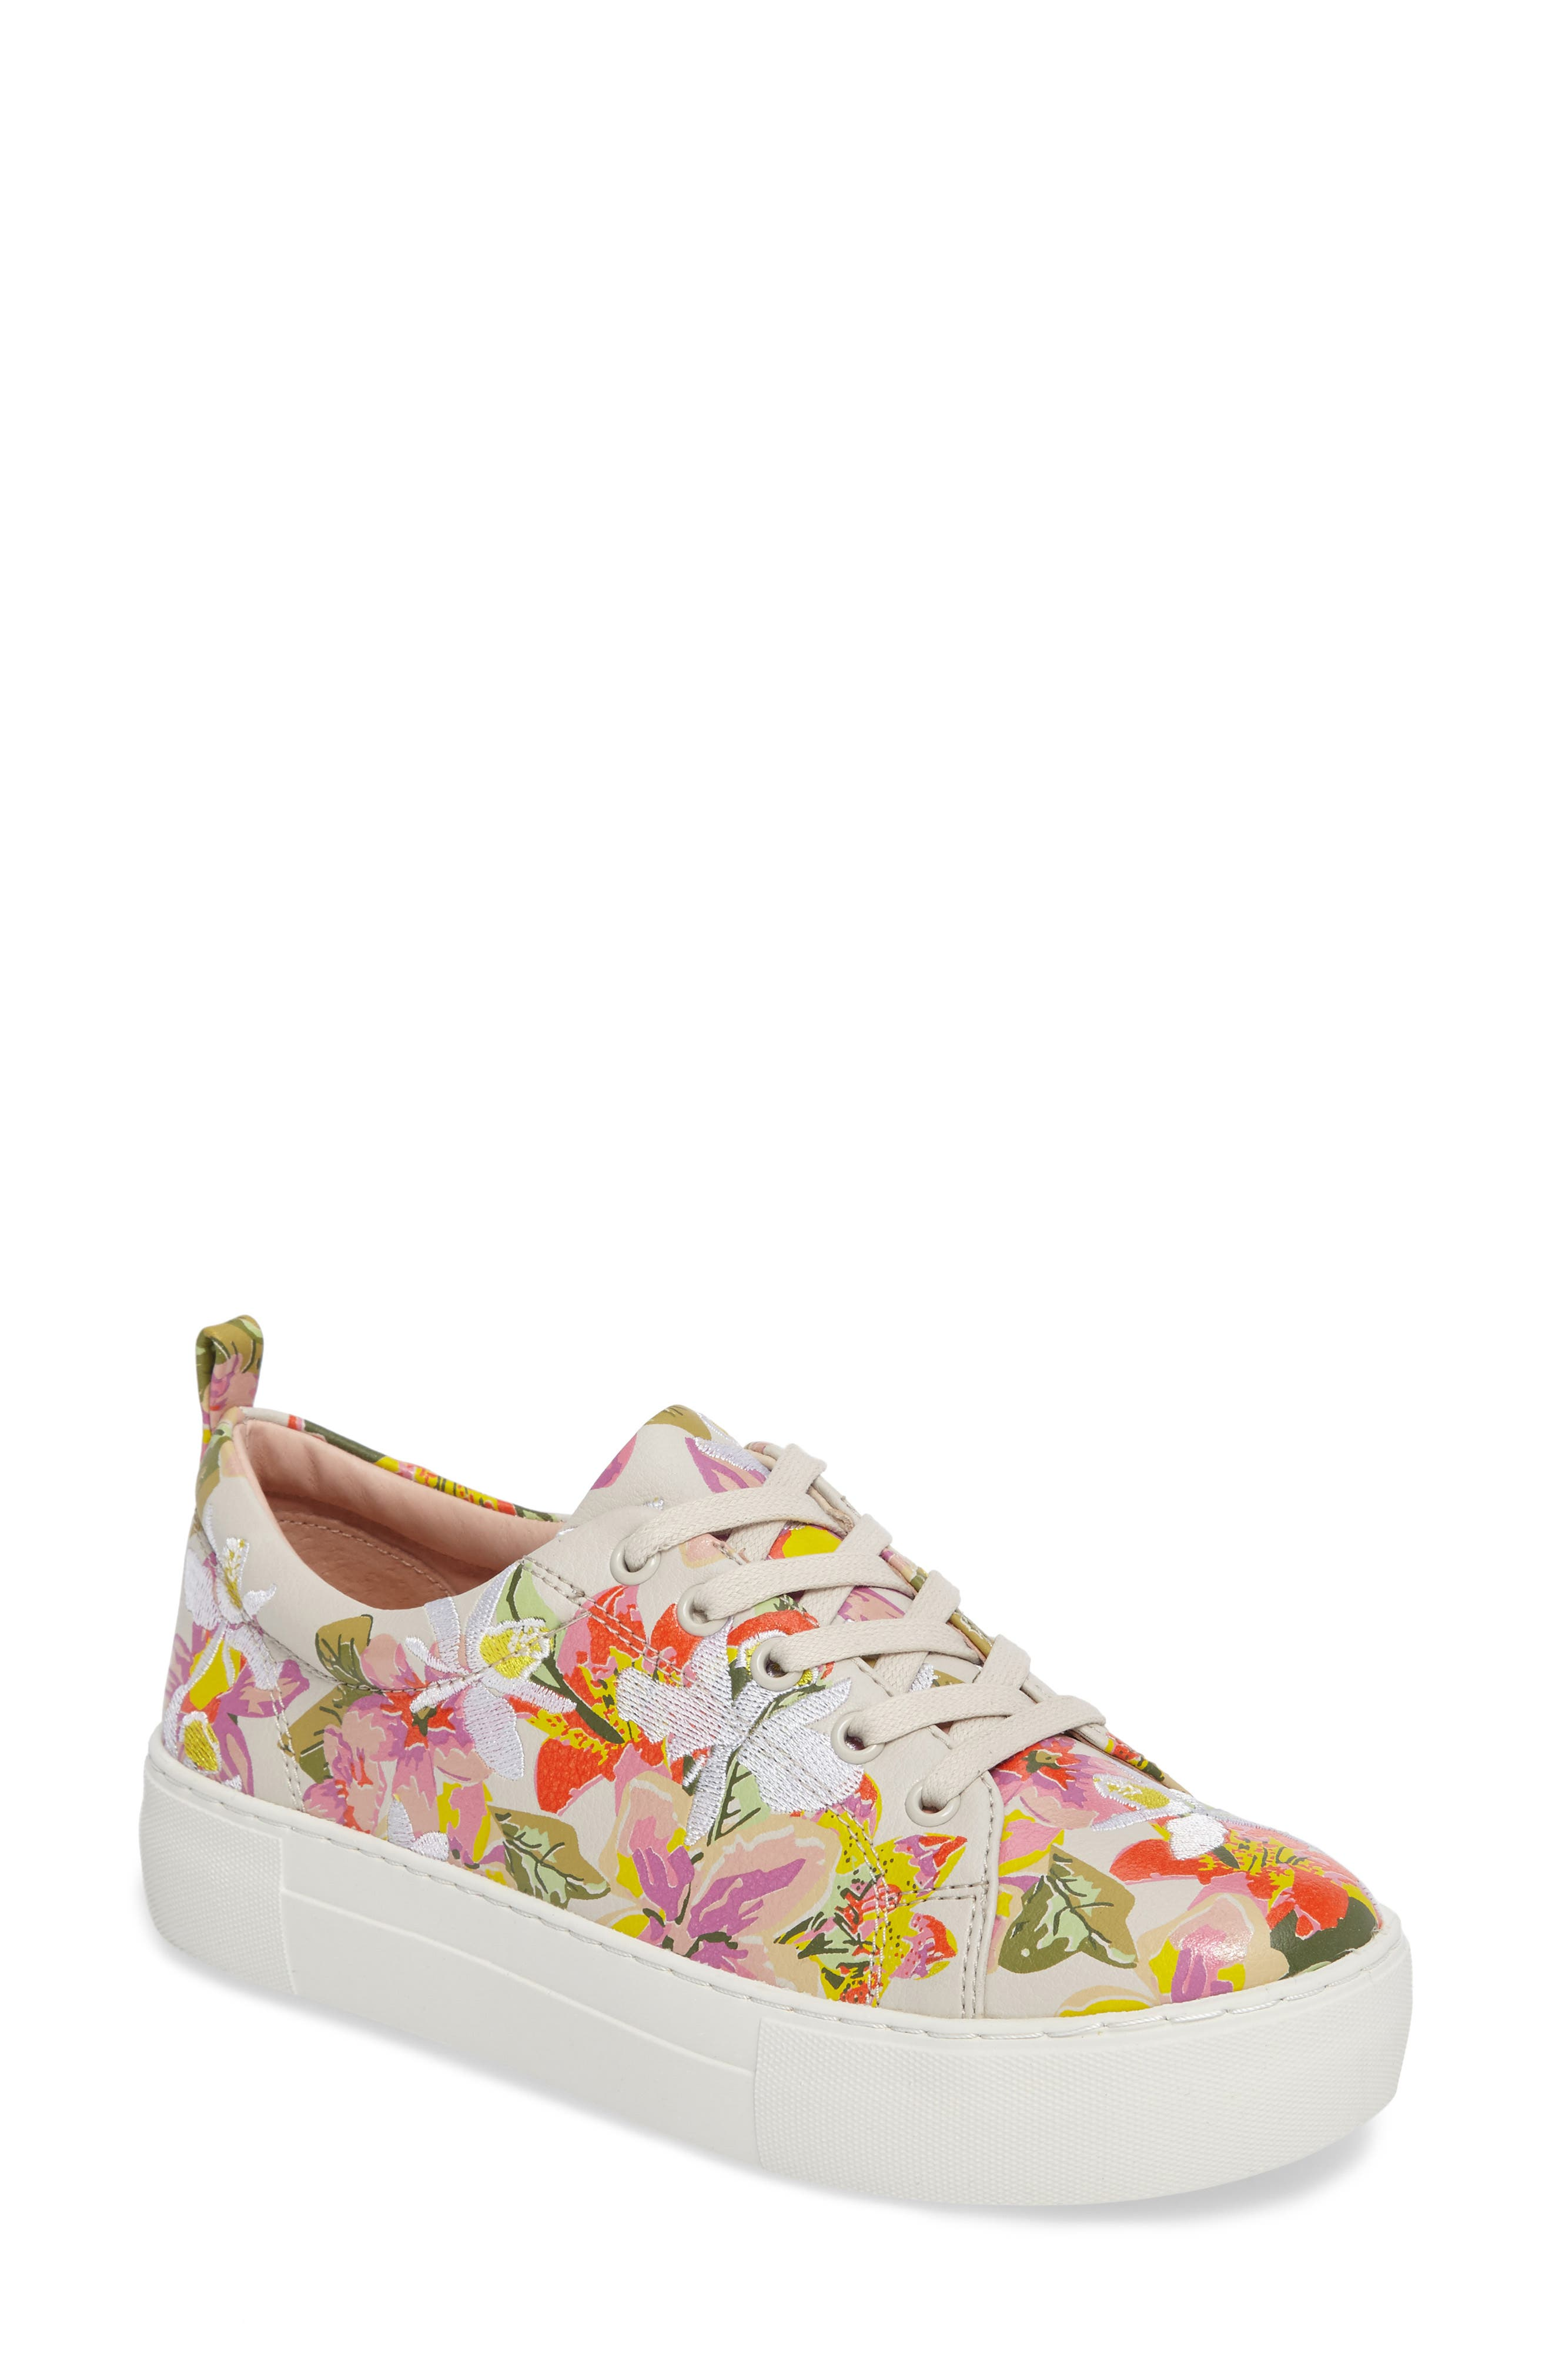 Appy Embroidered Platform Sneaker,                             Main thumbnail 1, color,                             650